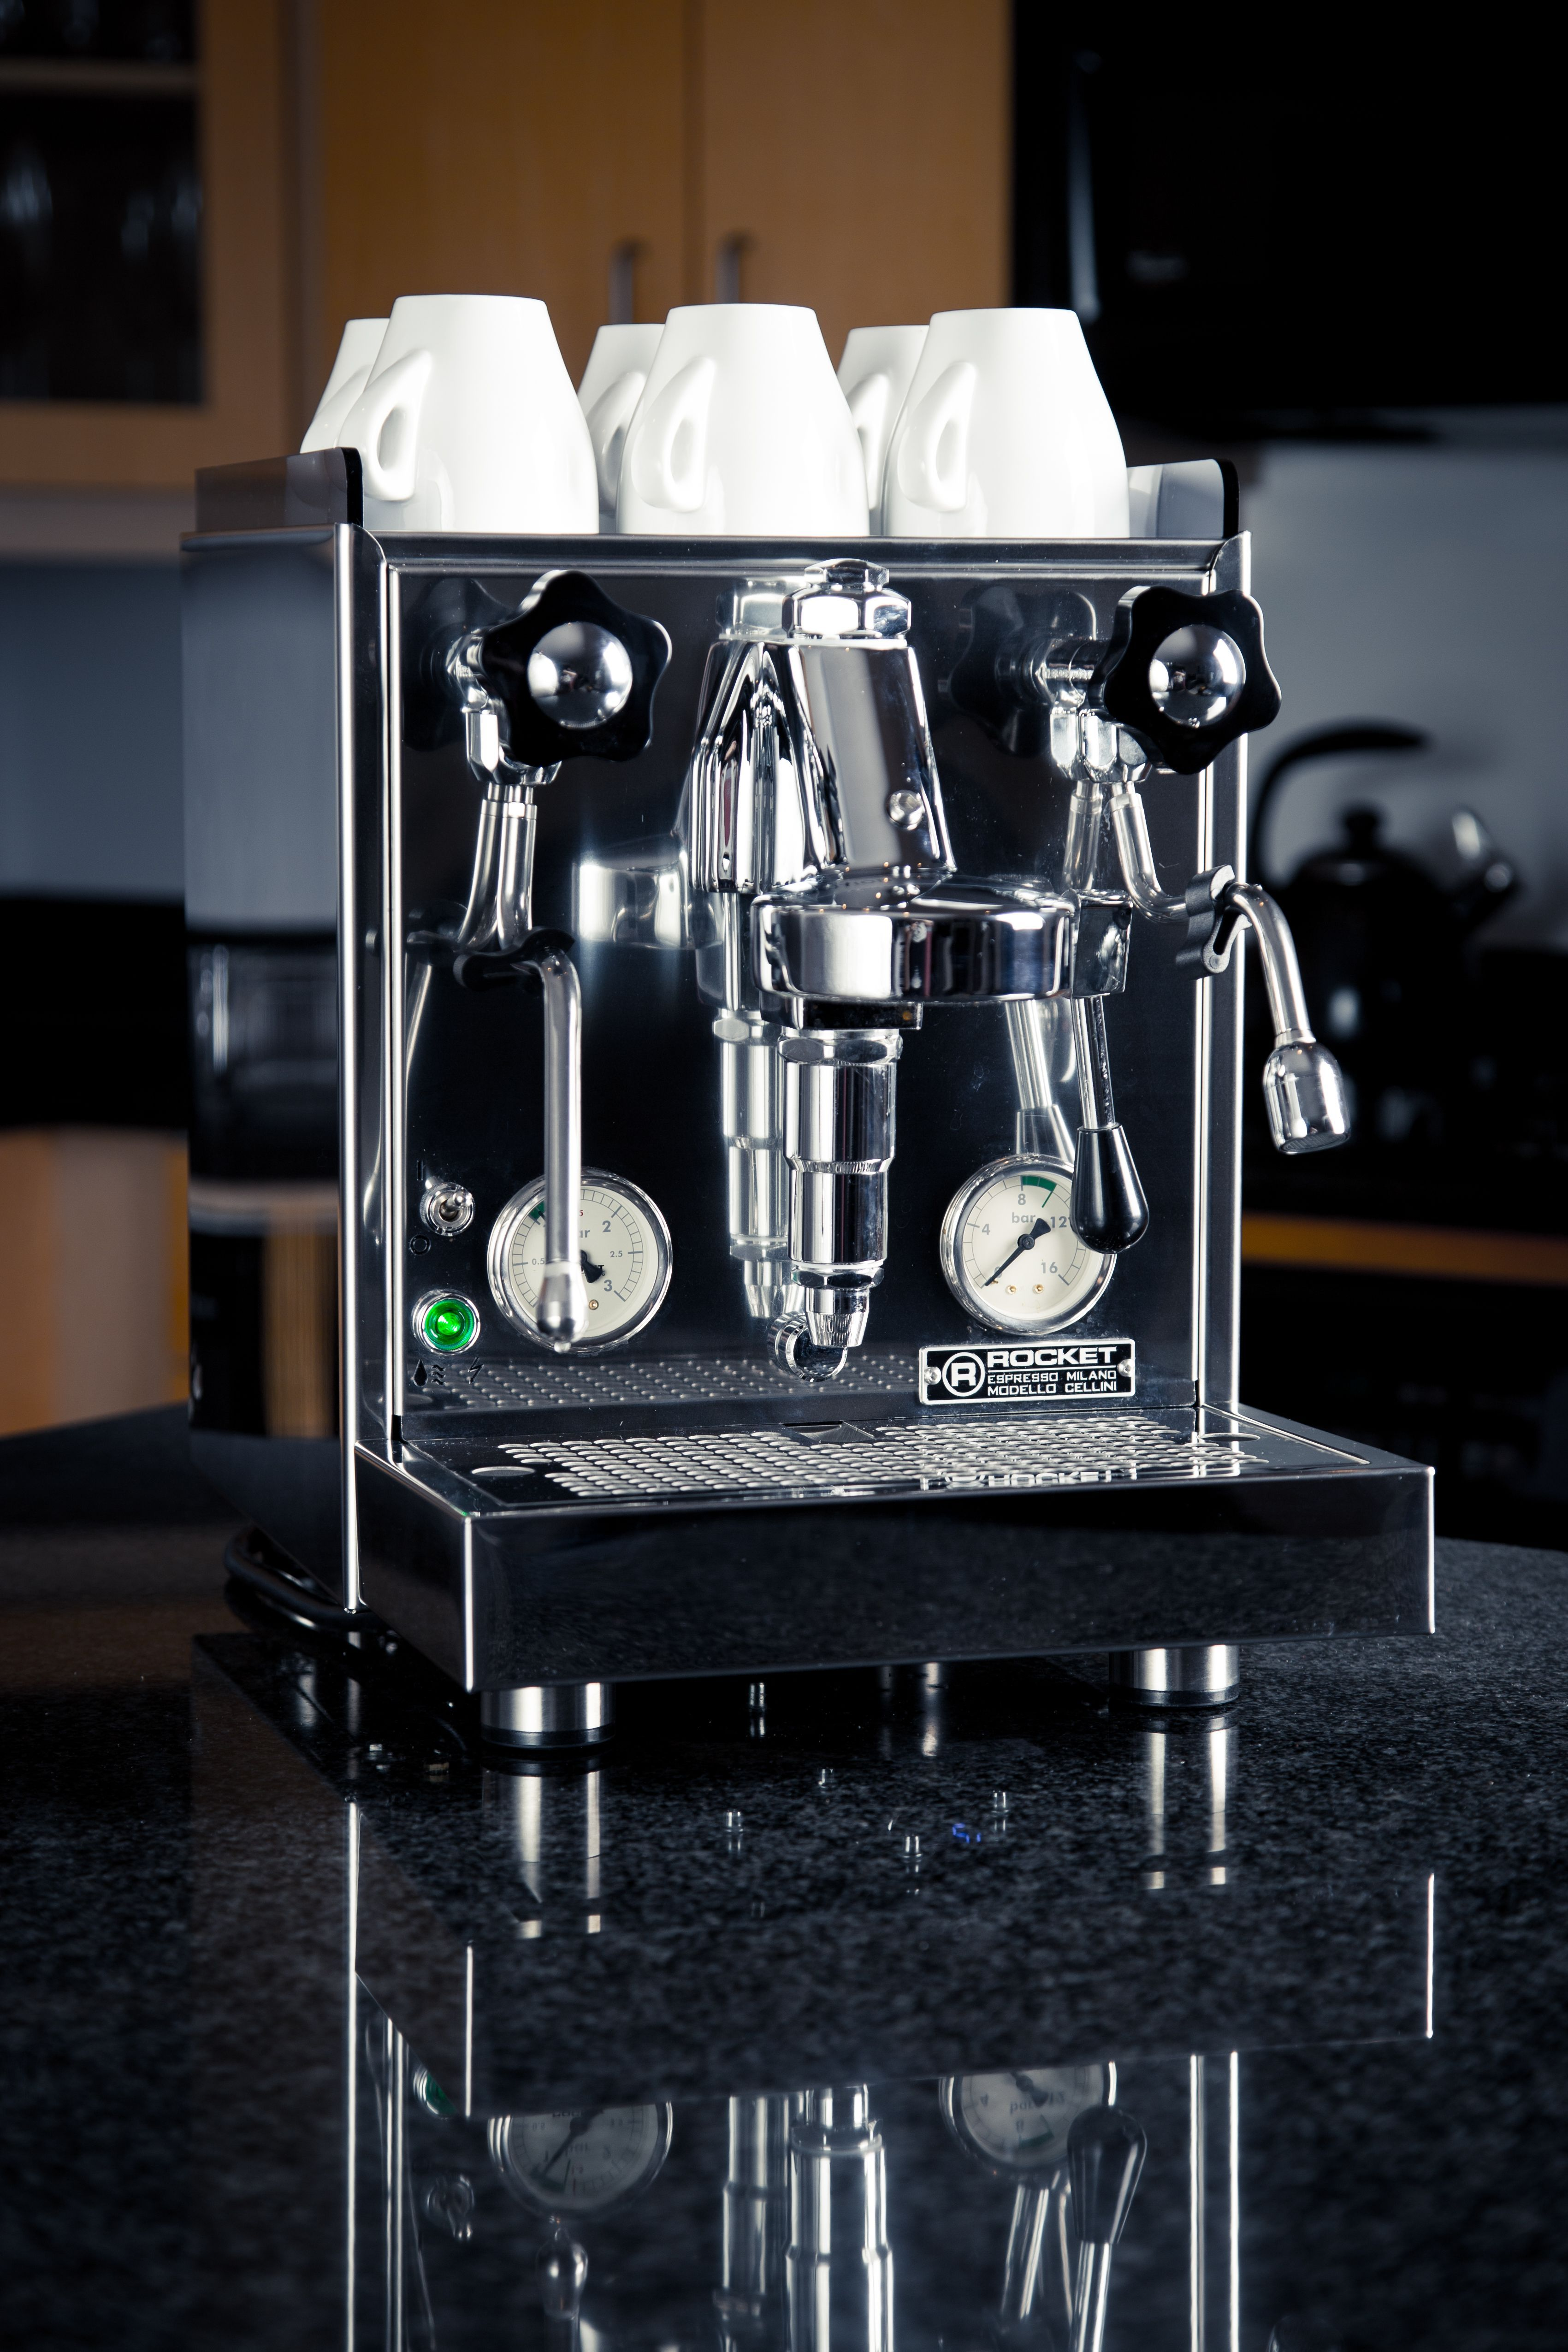 Rocket Espresso machines (made in Italy) are as beautiful